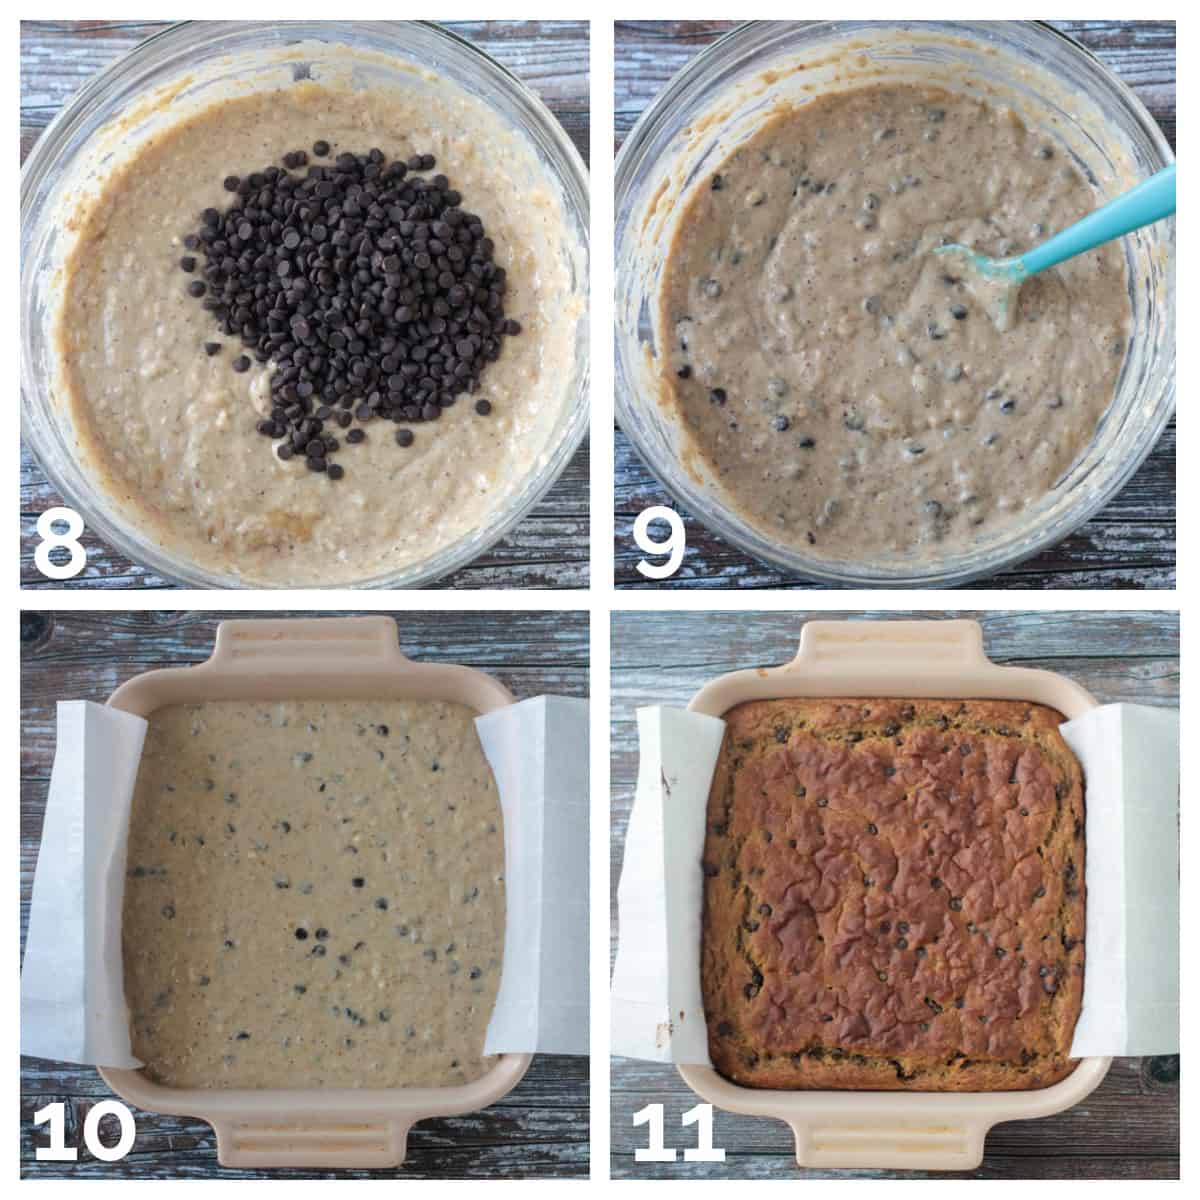 4 photo collage of adding chocolate chips to the batter and baking it in pan.